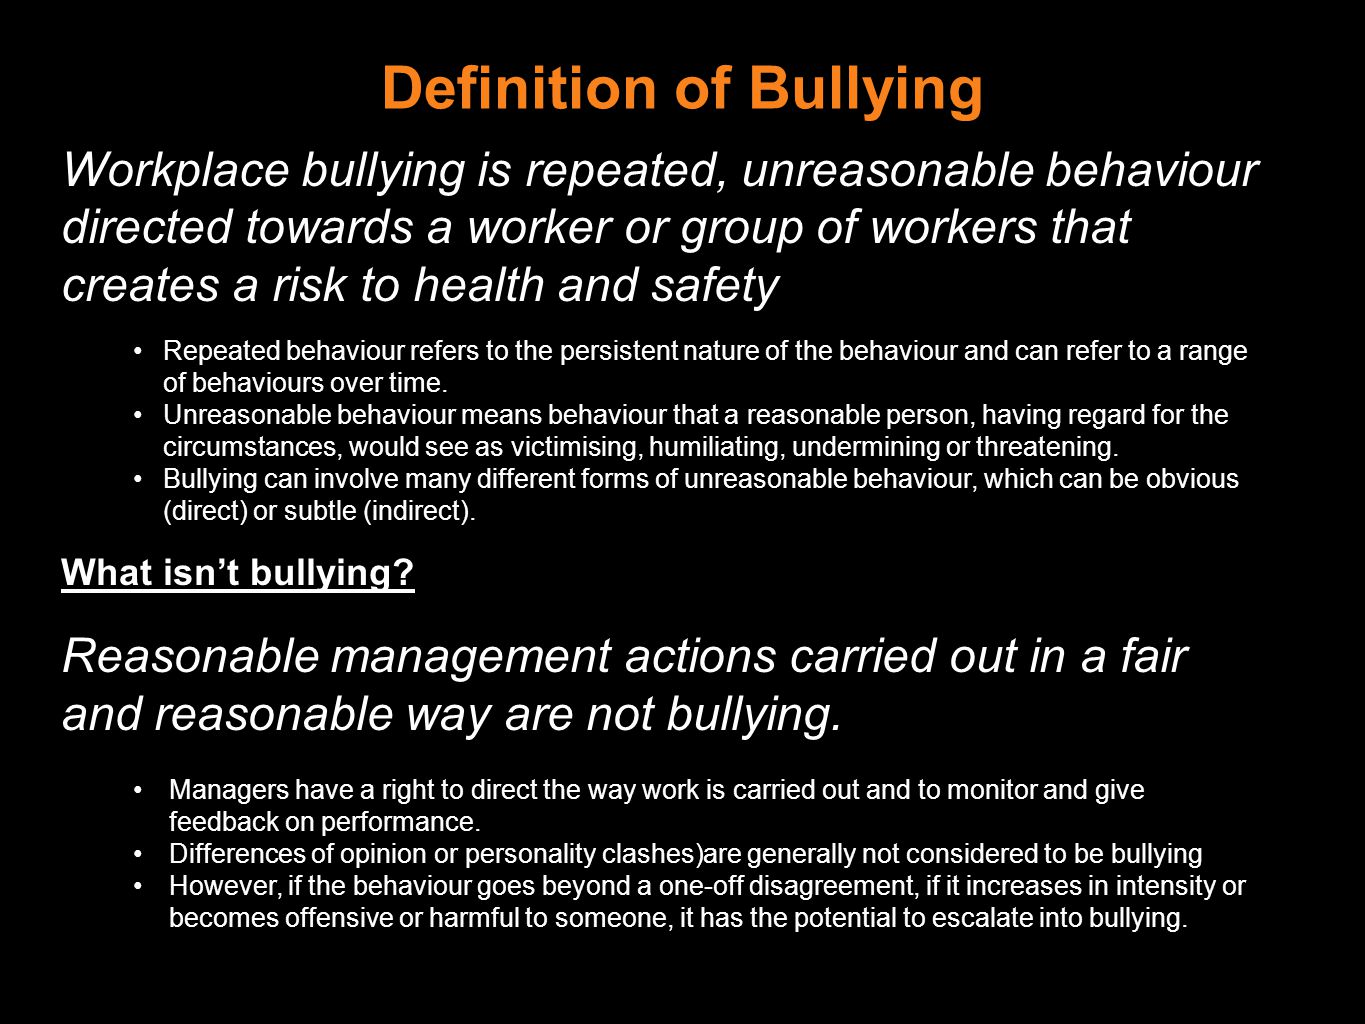 Definition of Bullying Workplace bullying is repeated, unreasonable behaviour directed towards a worker or group of workers that creates a risk to health and safety Repeated behaviour refers to the persistent nature of the behaviour and can refer to a range of behaviours over time.